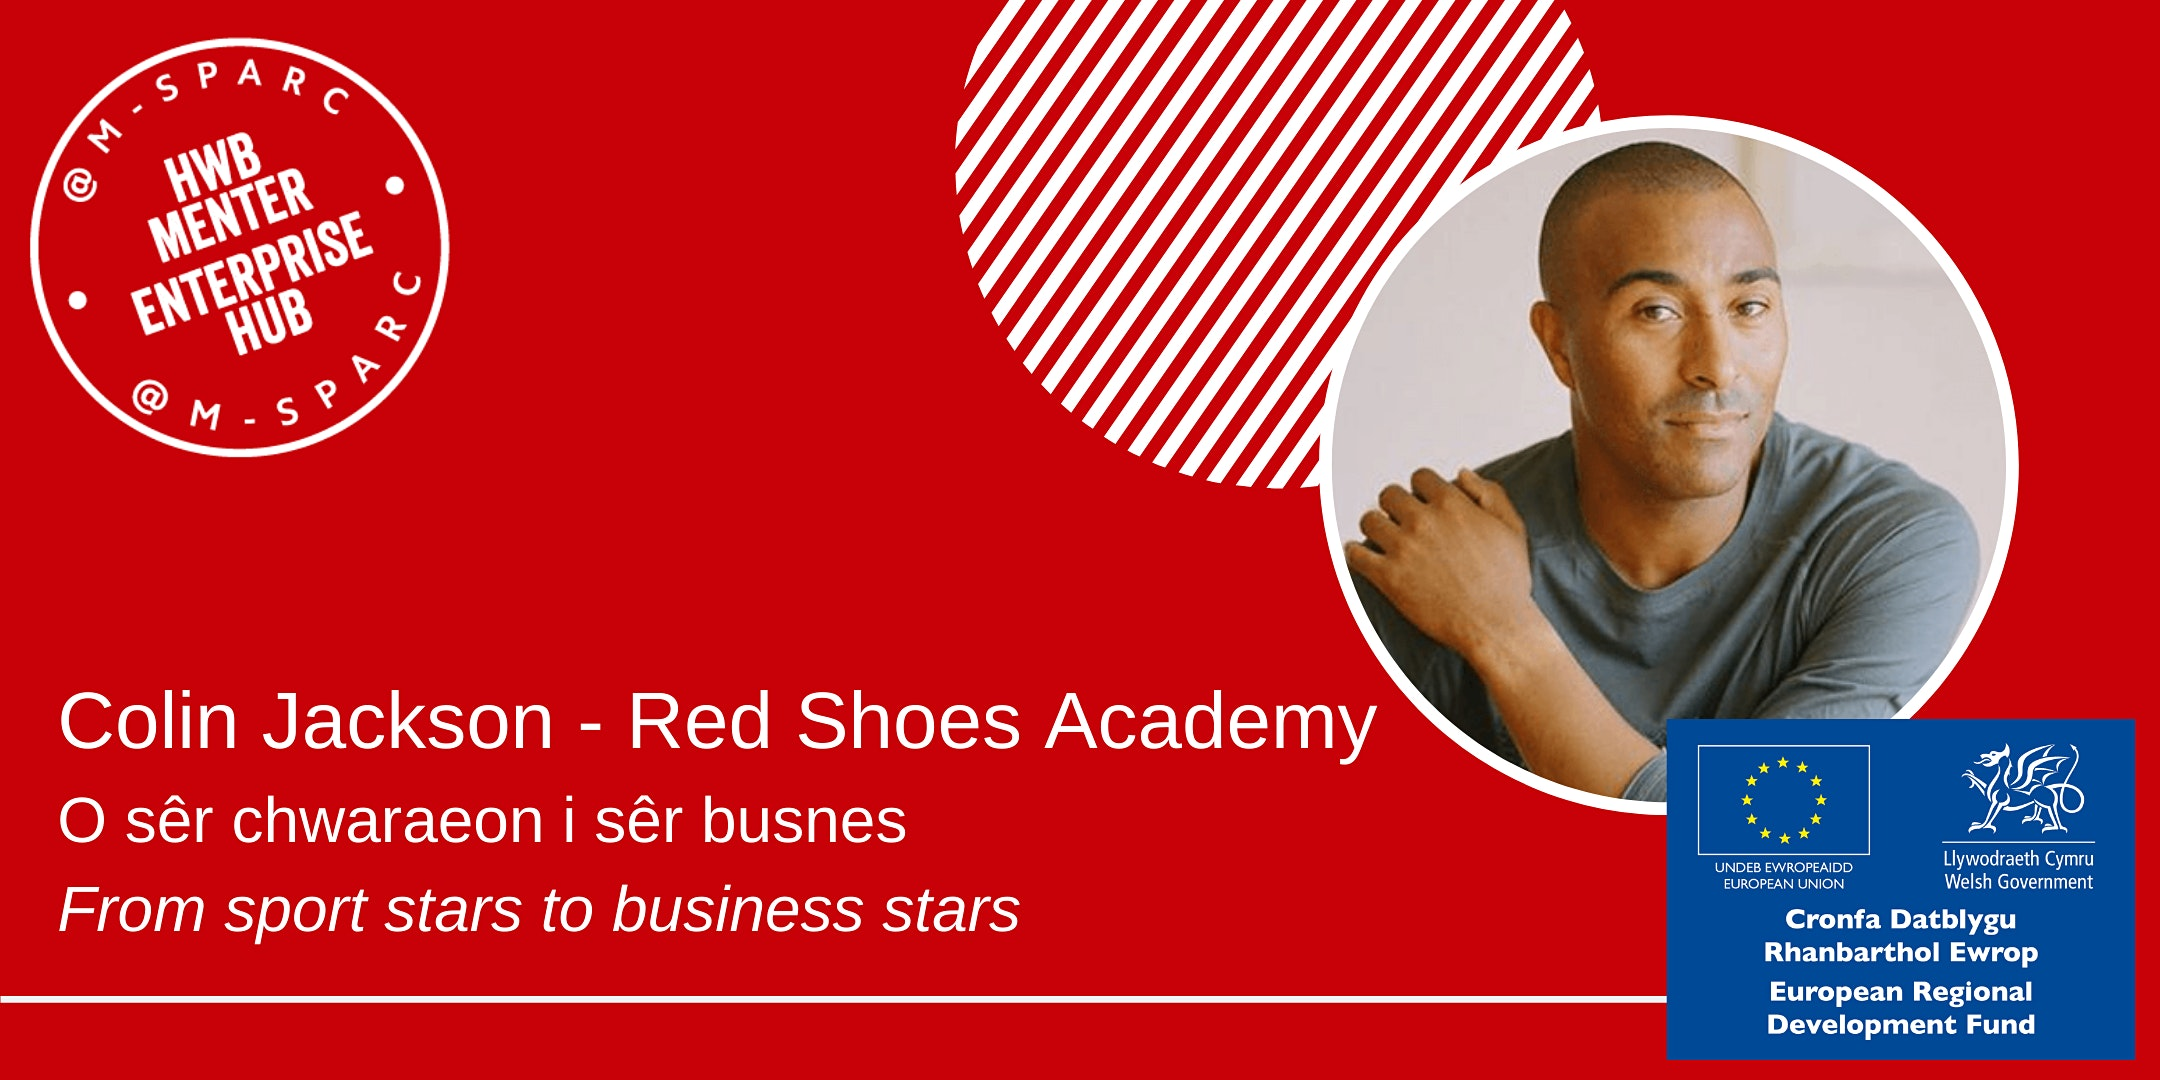 Colin Jackson - O sêr chwaraeon i busnes... from sport stars to business...